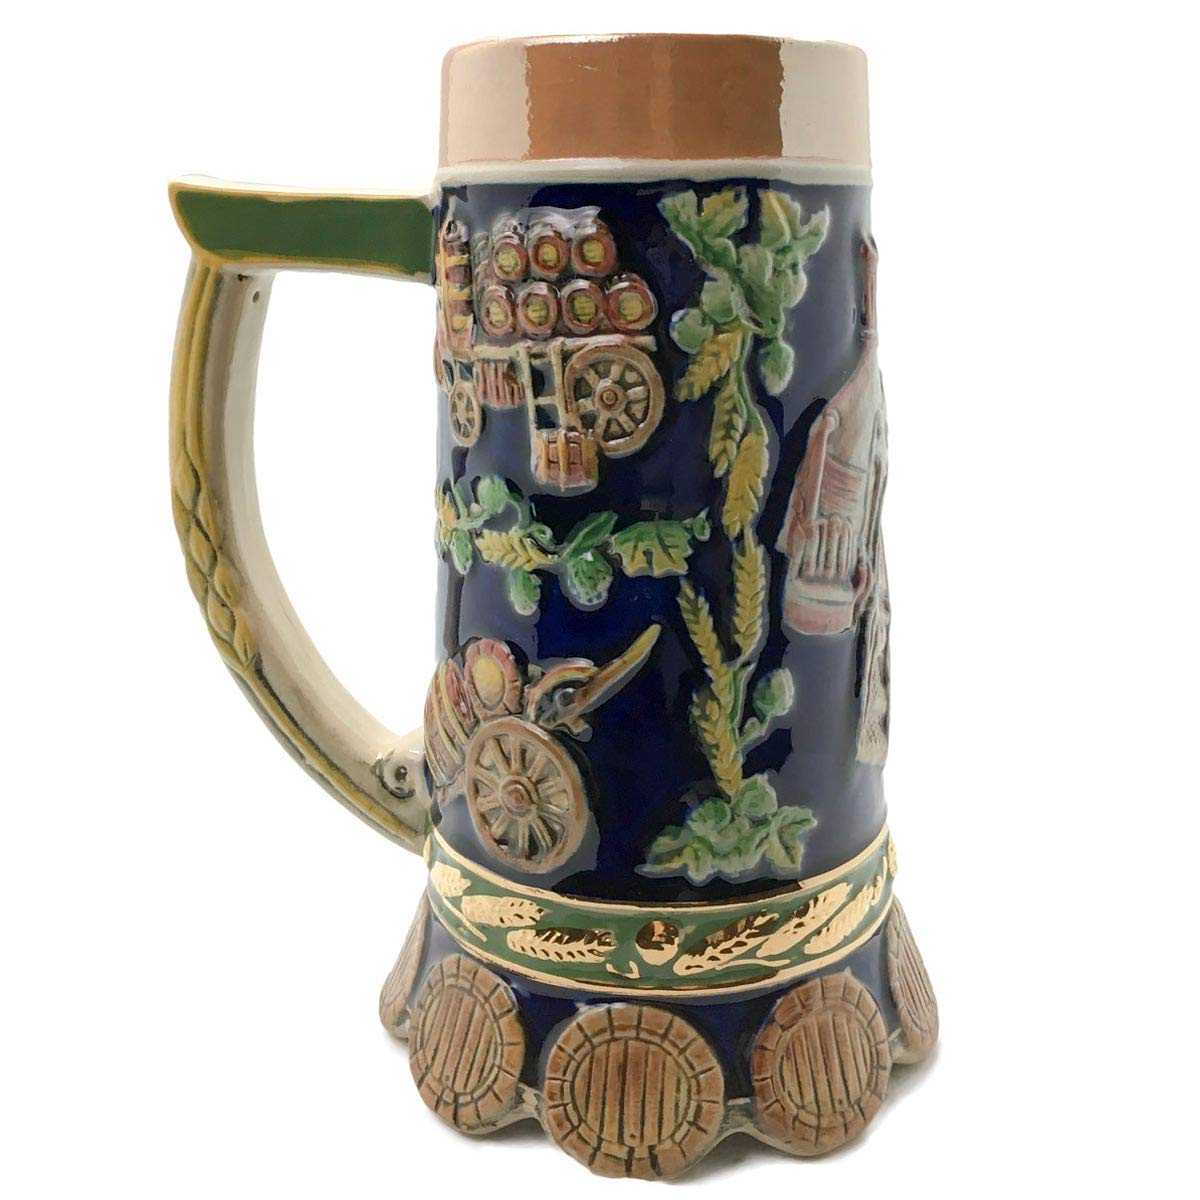 Brewing Time .85 Liter Beer Mug Beer Stein Essence of Europe Gifts E.H.G S4192